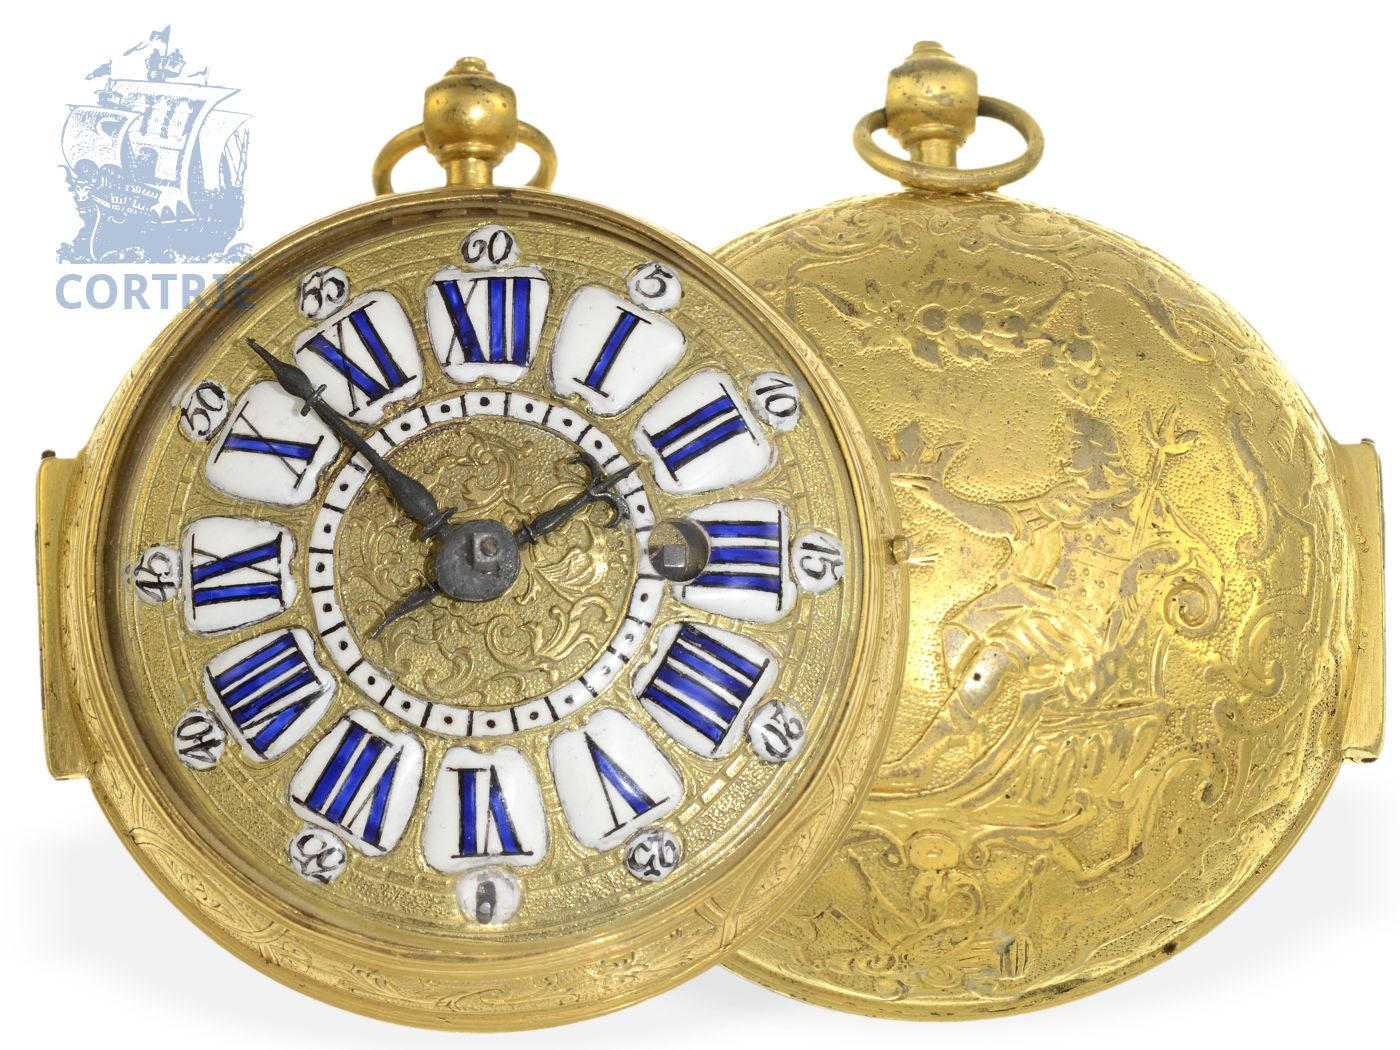 Pocket watch: extravagant Louis XV Oignon watch with relief case coronation scene, Jacques Panier Paris ca. 1715-